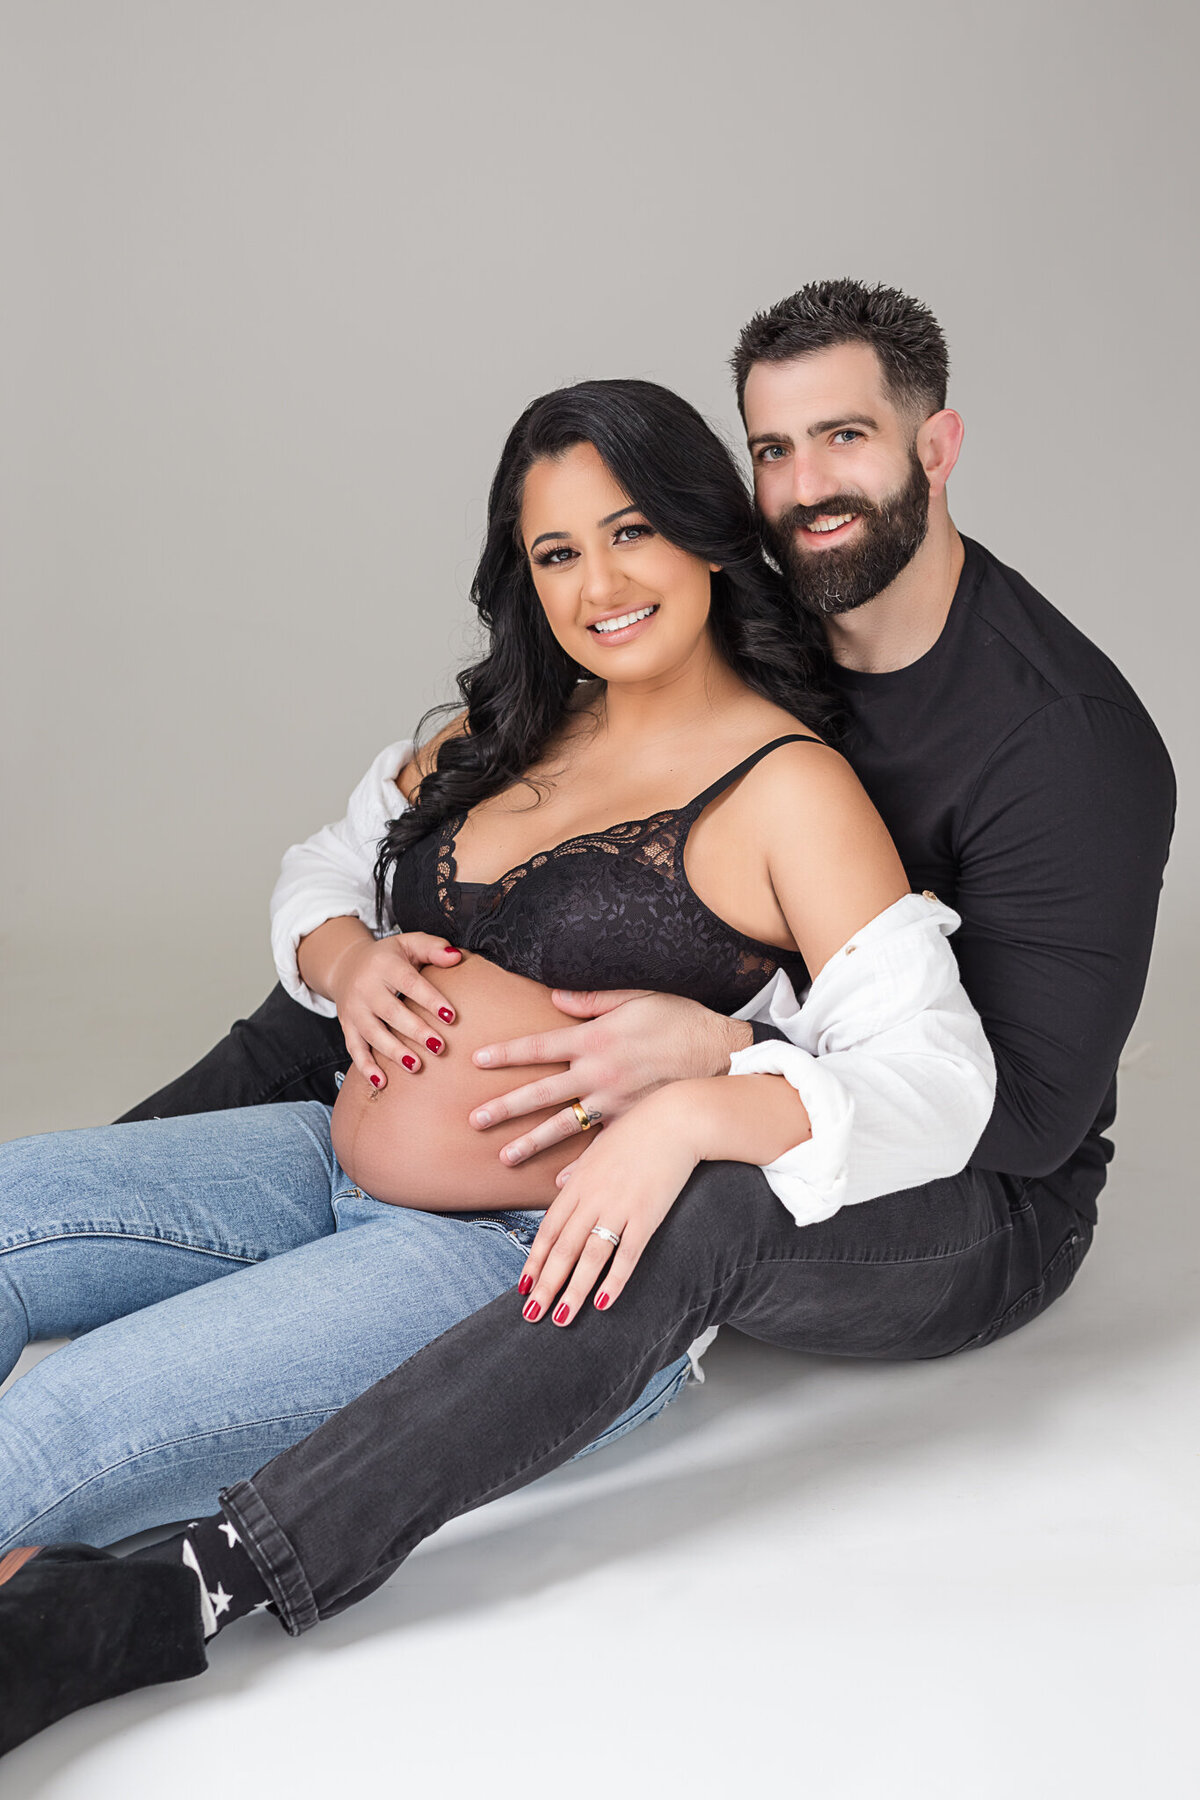 orlando maternity photos in studio